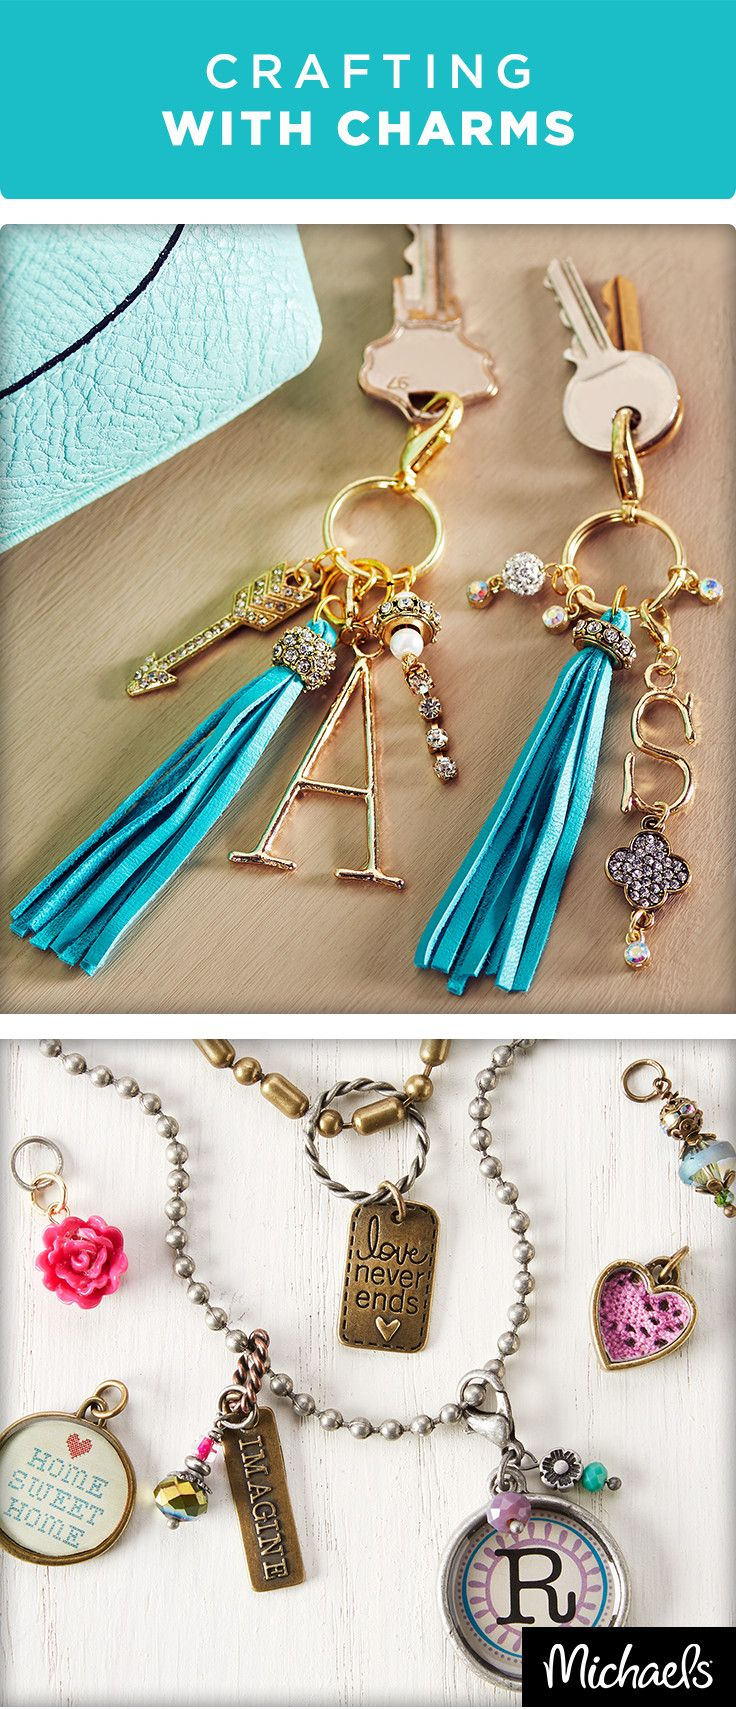 Add a personal twist to your jewelry to make it one of a kind. Necklaces with initials or letter charms are the latest trend. Find all of the supplies you need to make your own custom charm projects at your local Michaels store.